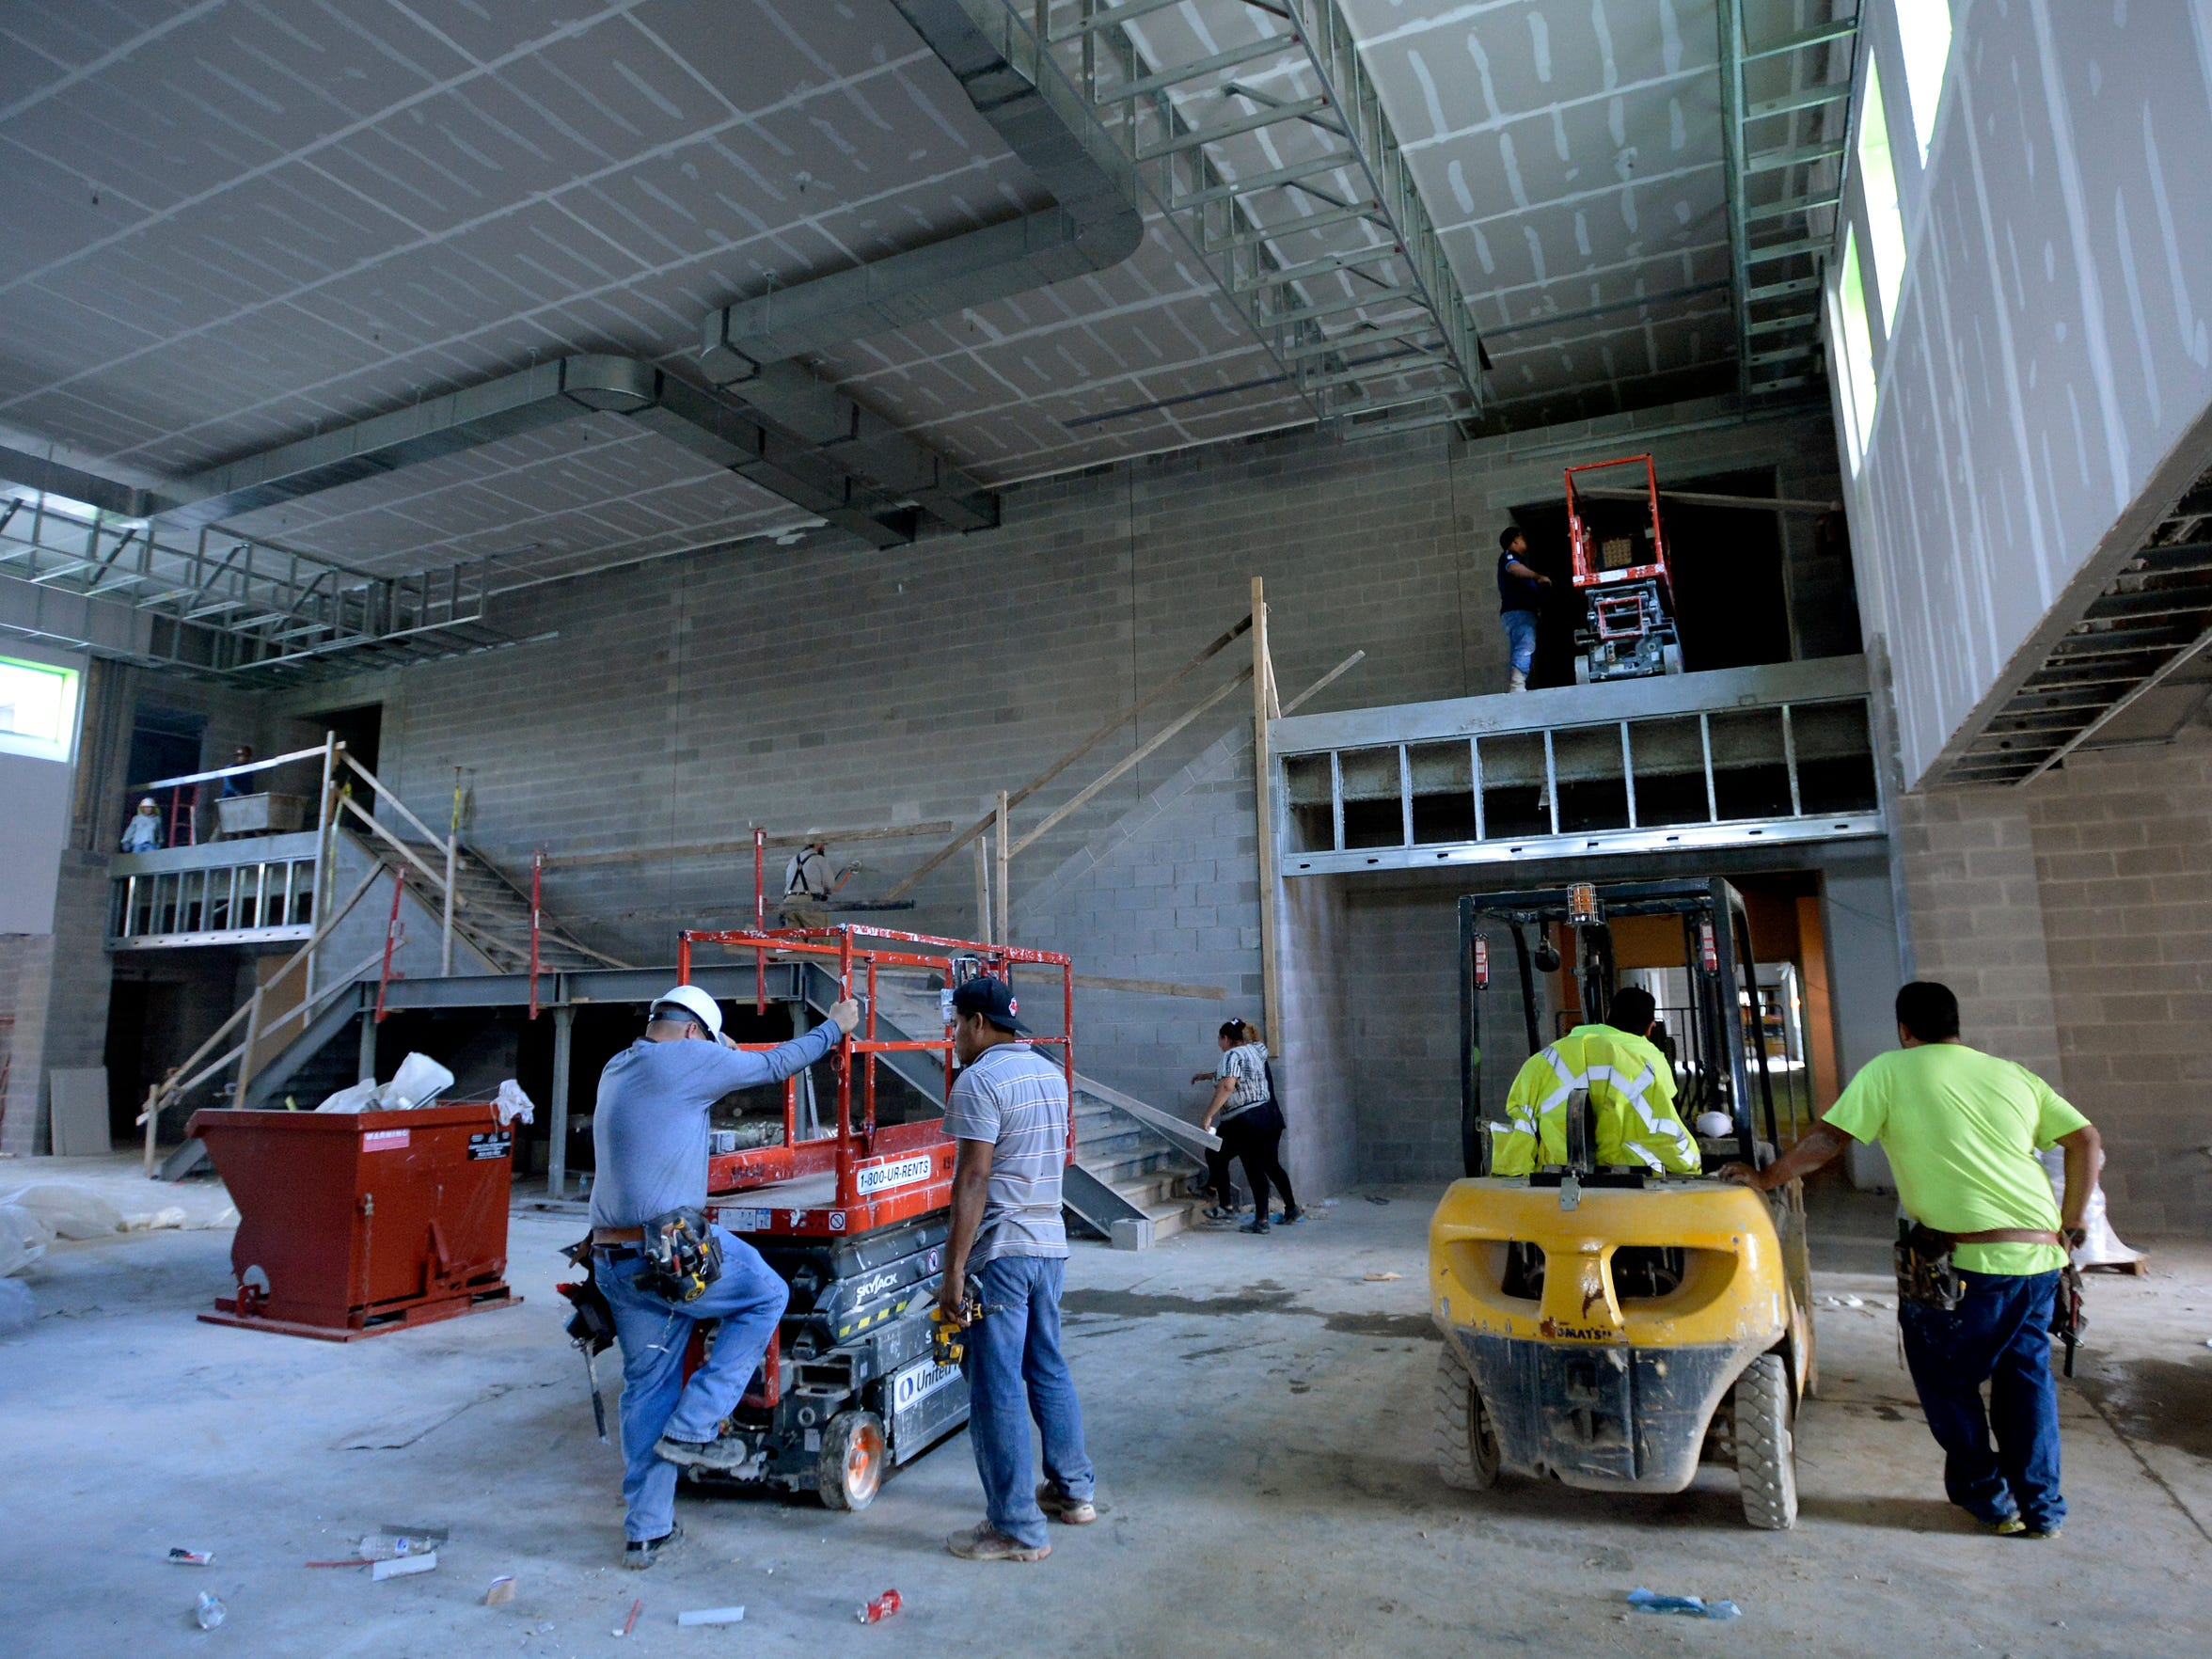 Builders work in the common area to be shared by the new elementary and middle schools in Thompson's Station on Wednesday, Aug. 23, 2017. The schools, which have not been named yet, are expected to open in fall 2018 to keep up with growth in Williamson County.